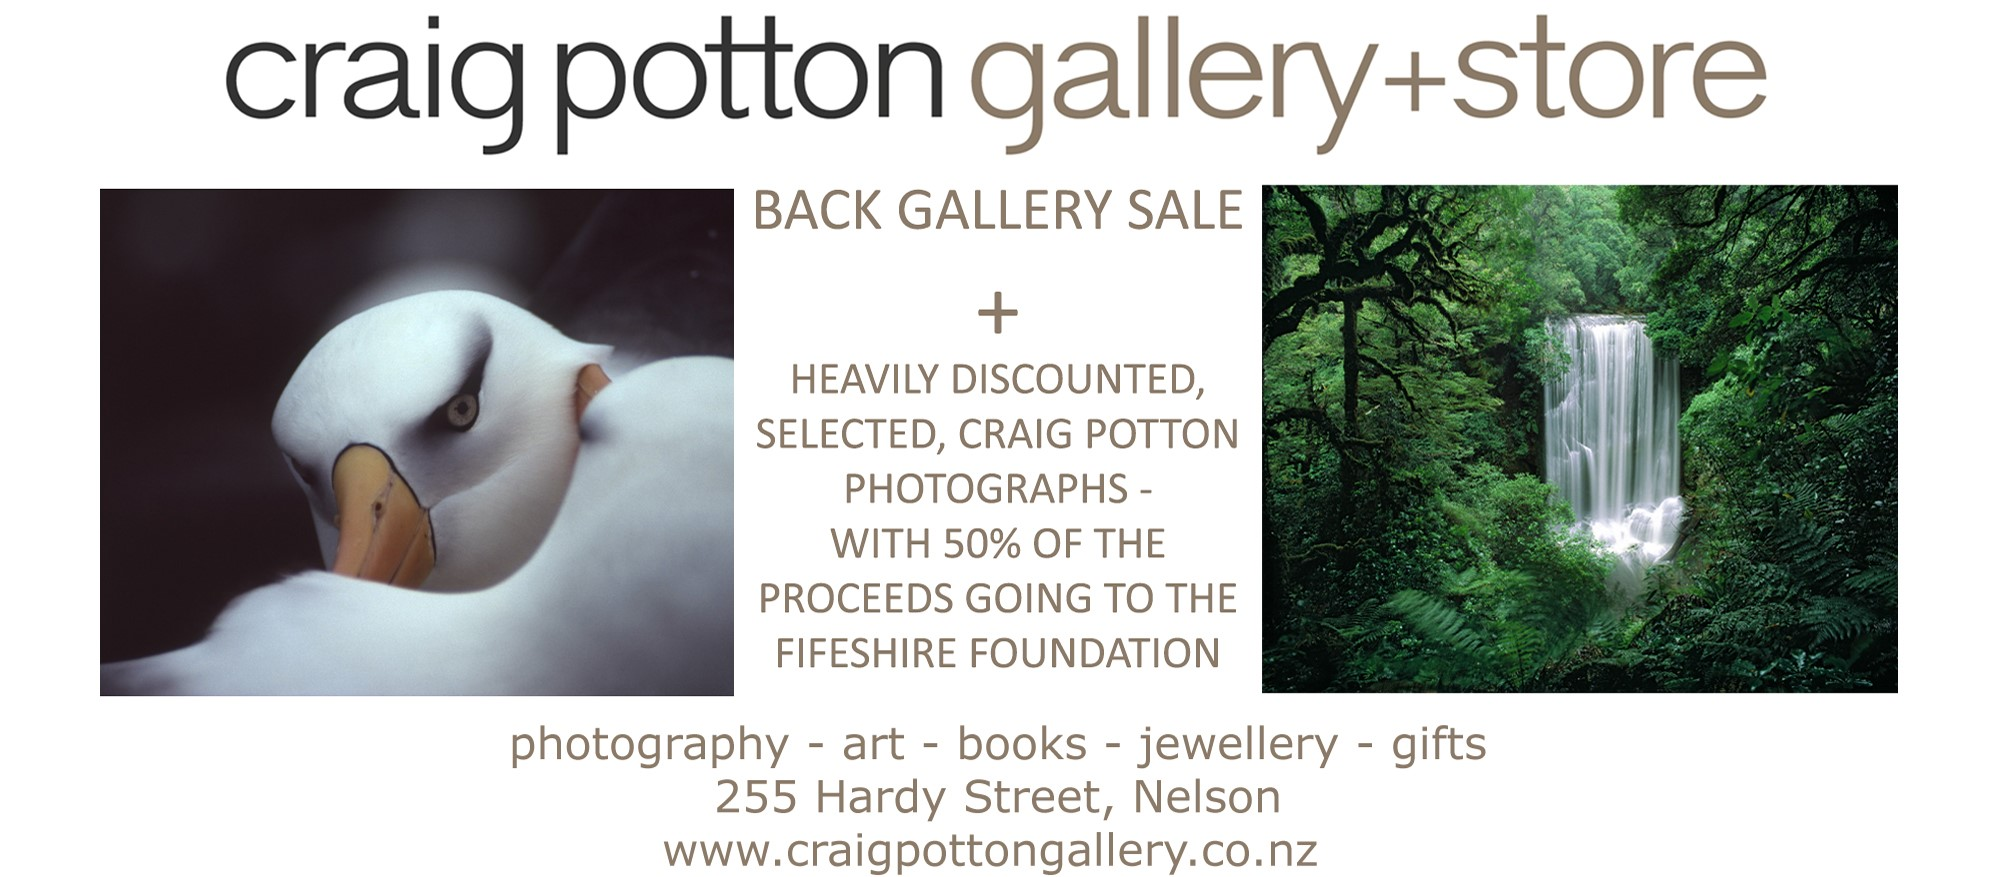 We are so grateful that Fifeshire Foundation has been chosen as the recipient of 50% of proceeds from the Craig Potton Gallery & Store back gallery sale. It is generosity such as this which allows us to continue helping locals in need.  Visit  https://www.craigpottongallery.co.nz/  to find out more